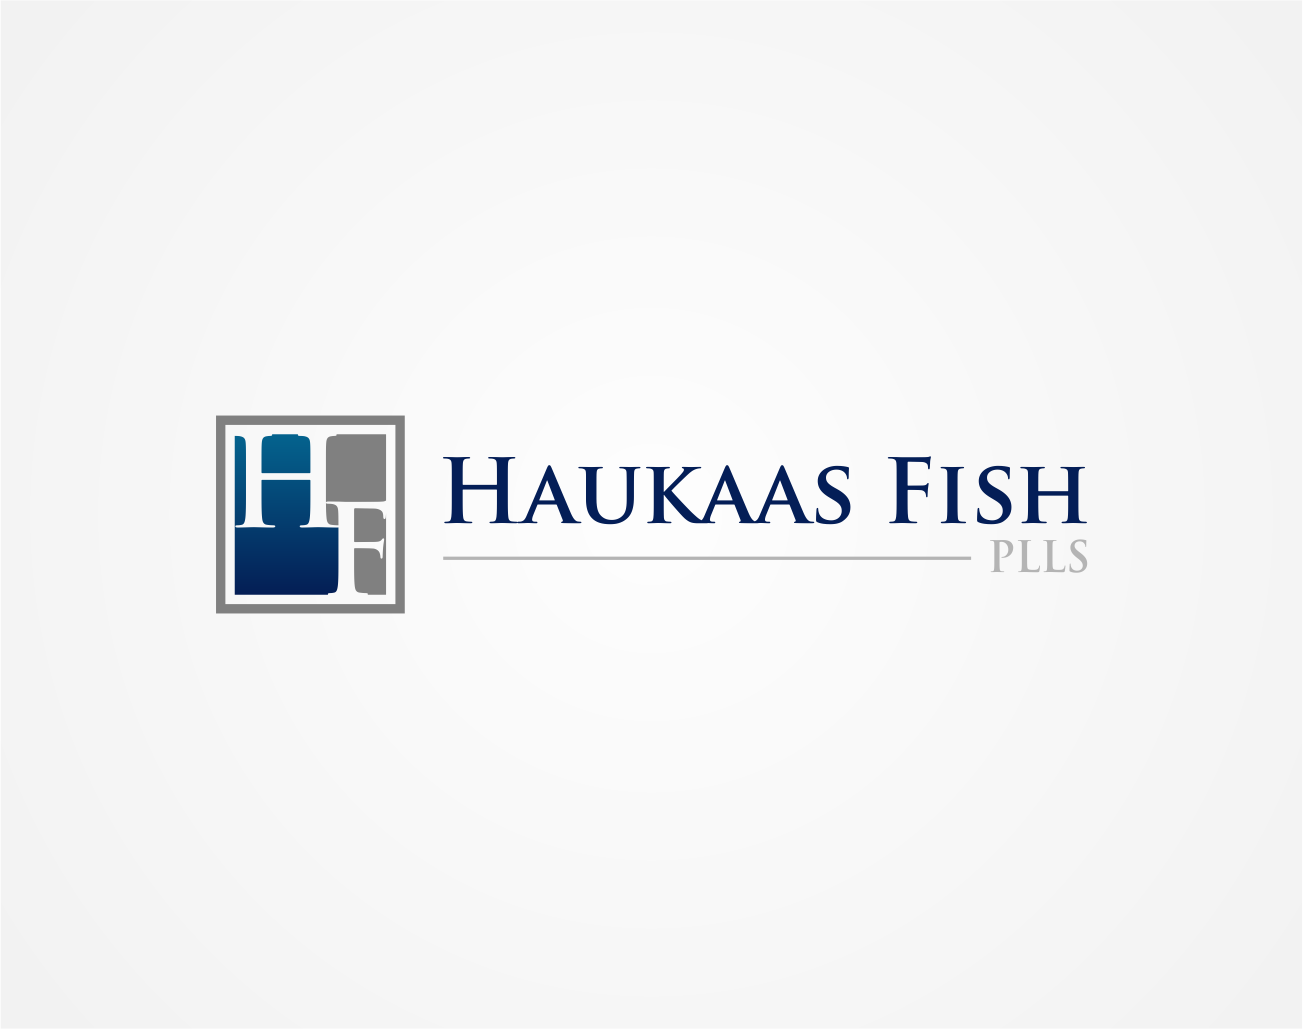 Law firm logo design for haukaas fish by tedesign design for Fish law firm